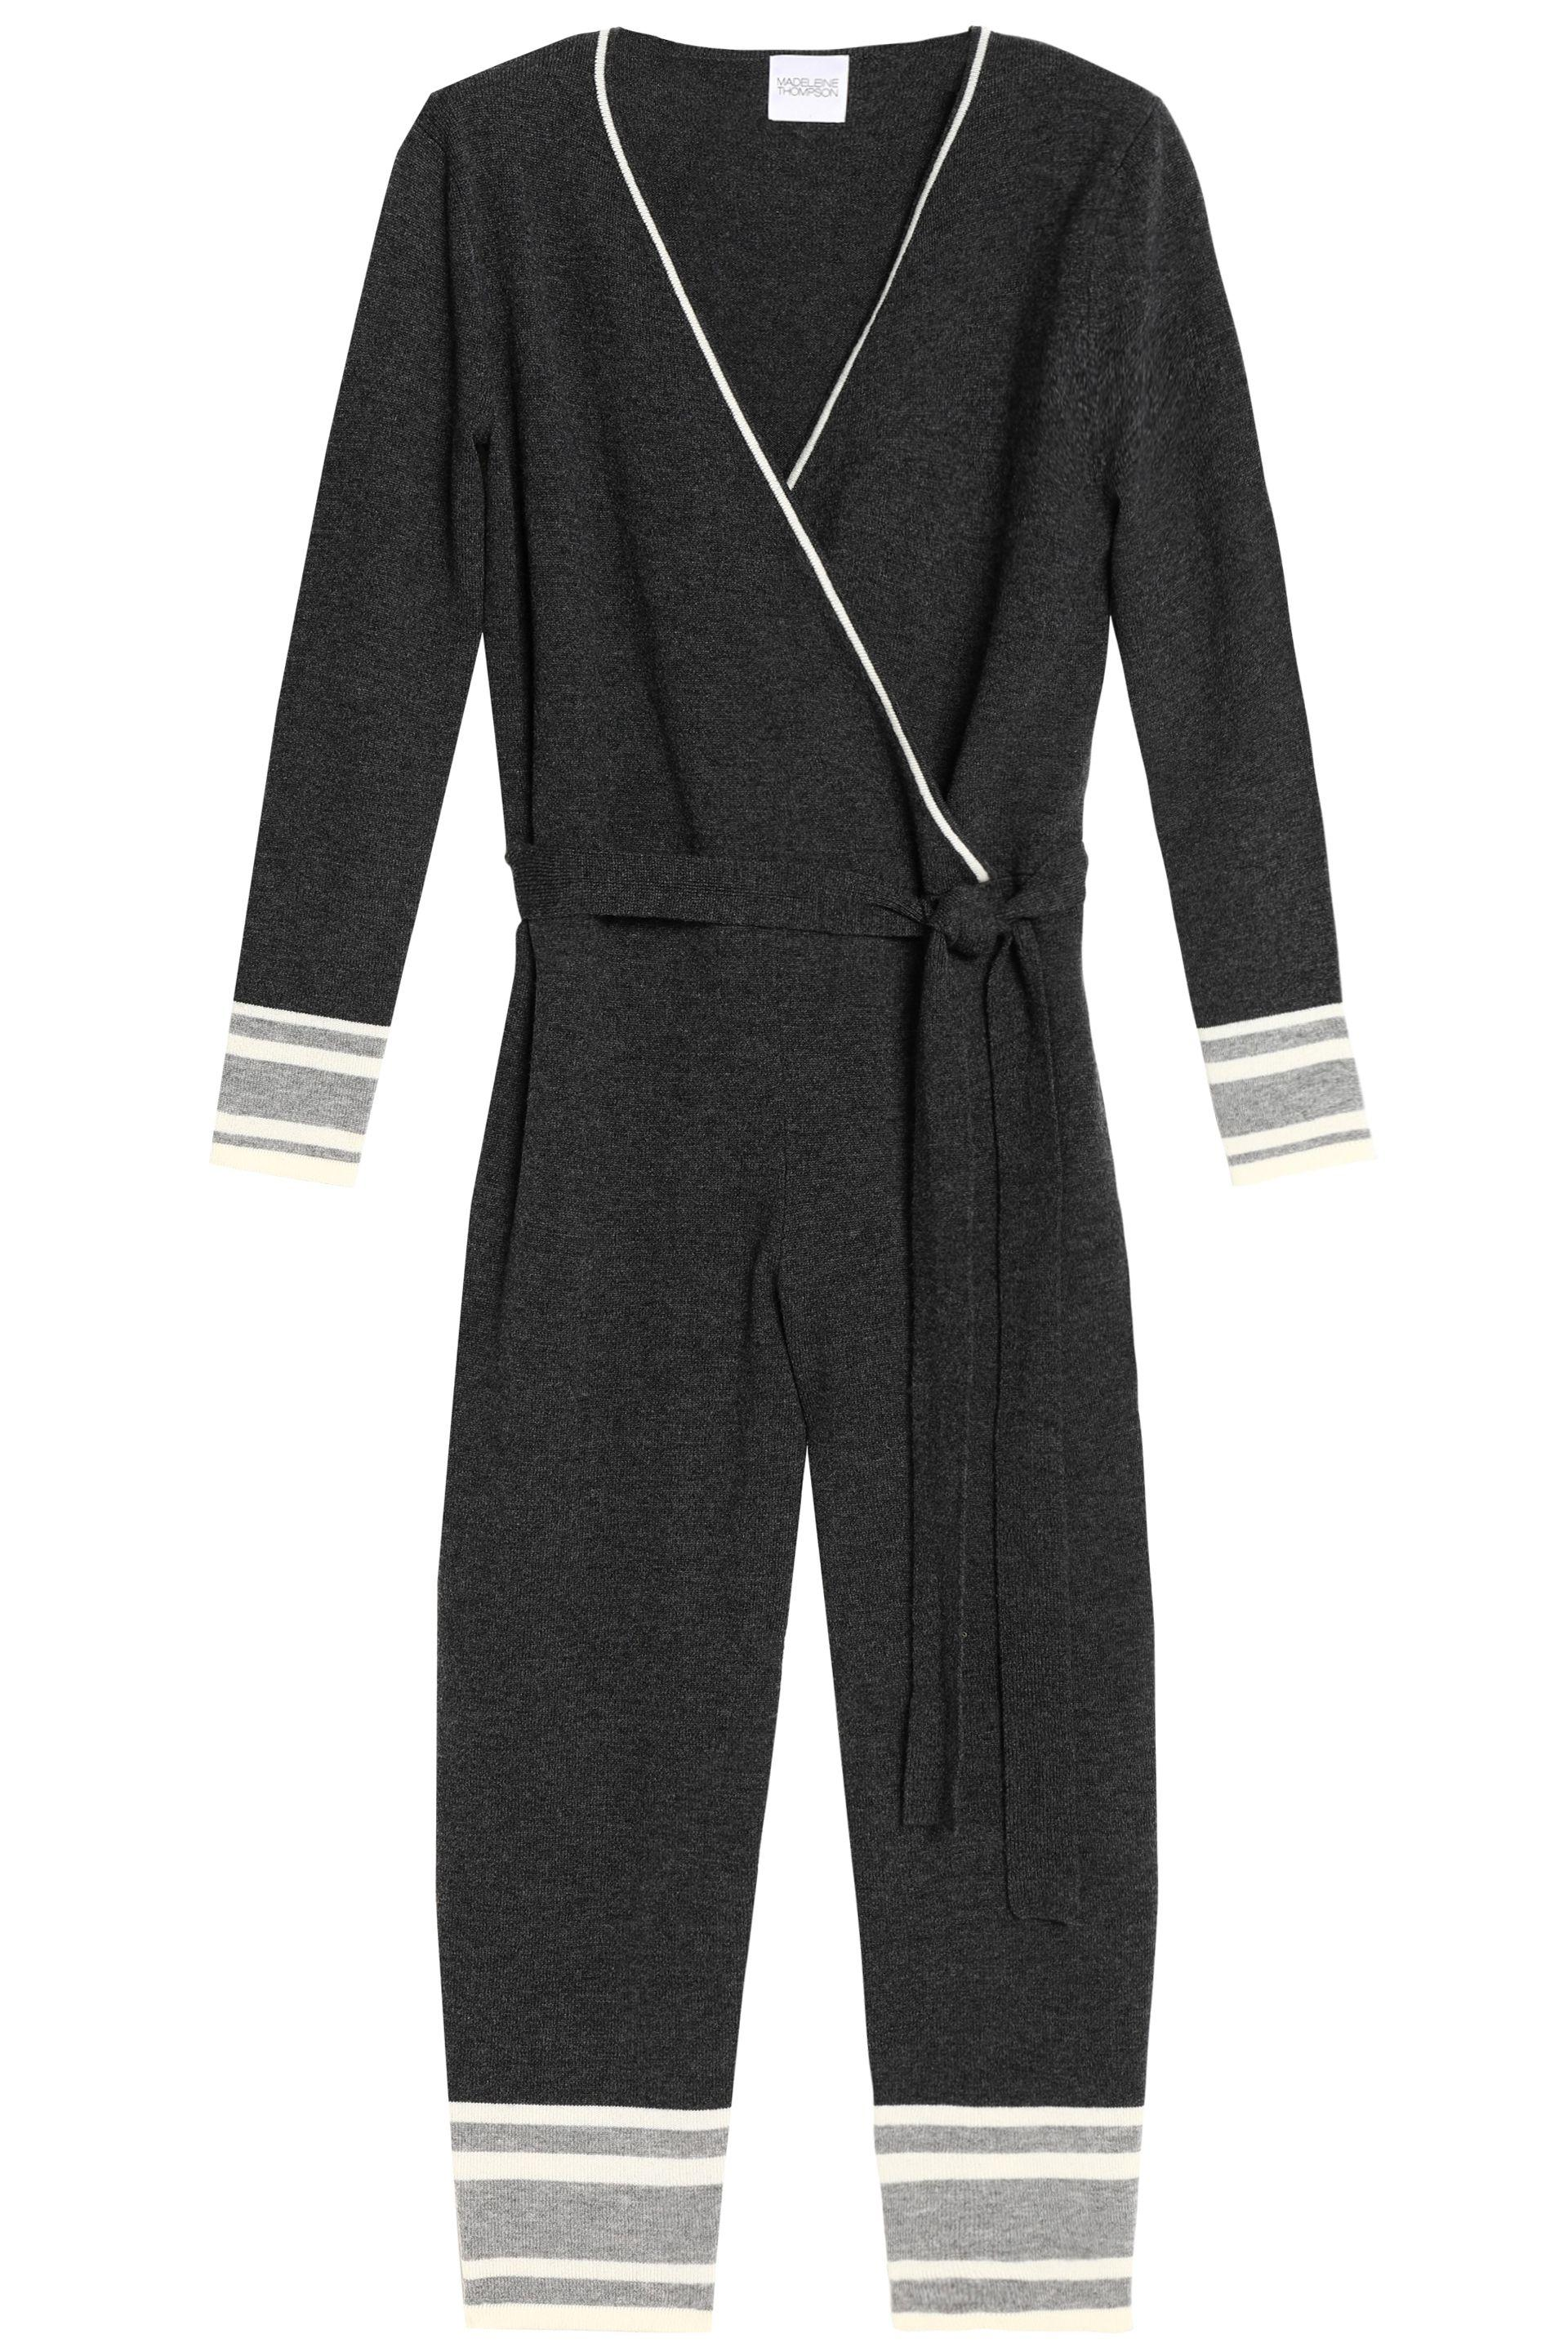 Madeleine Thompson Woman Wrap-effect Wool And Cashmere-blend Jumpsuit Dark Gray Size S Madeleine Thompson Good Selling Eastbay Cheap Online Sale Fast Delivery bhd8I5L